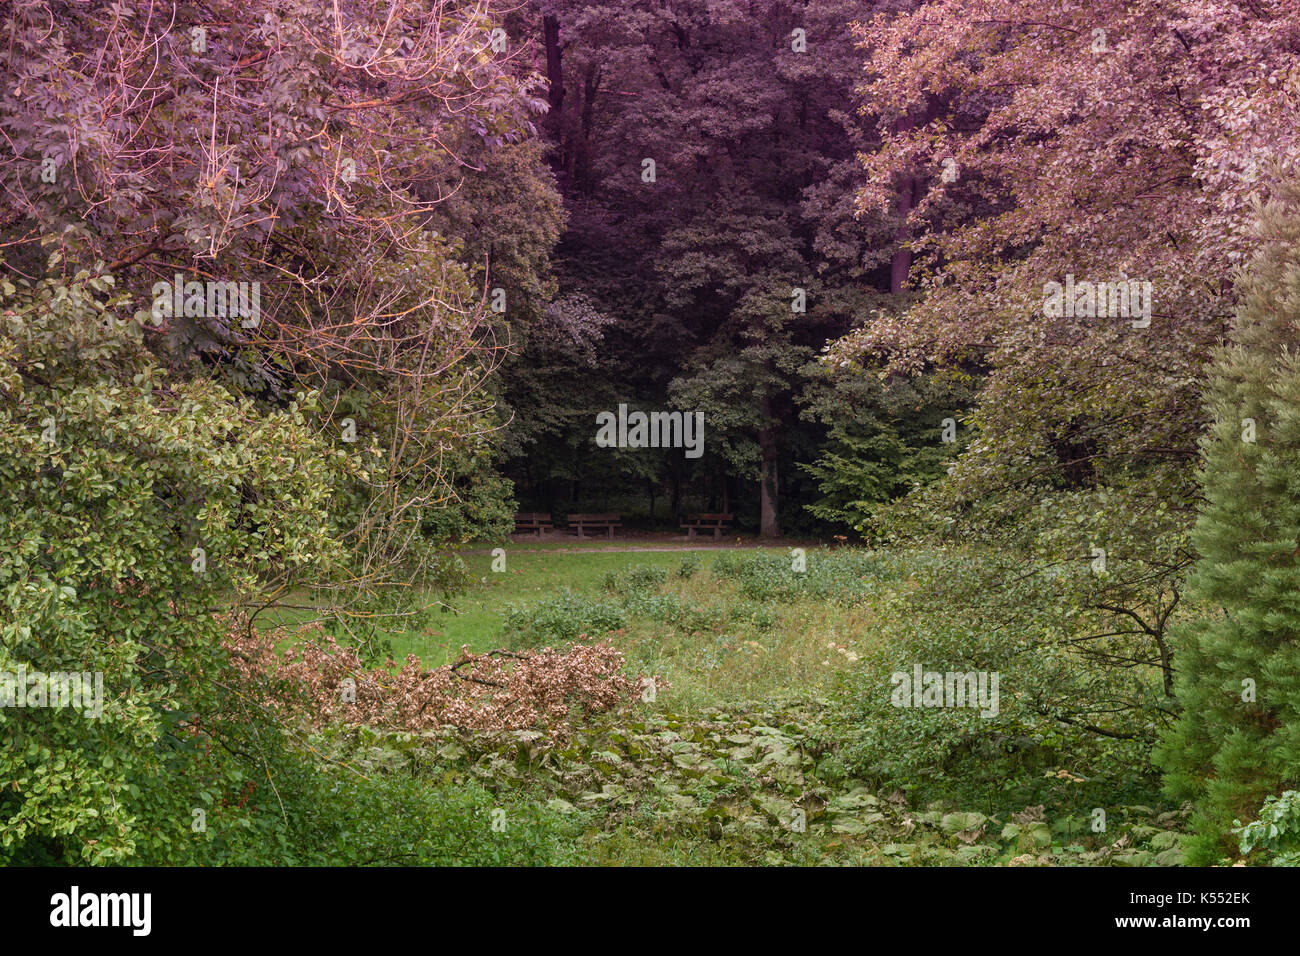 Three old benches in a forest clearing - Stock Image